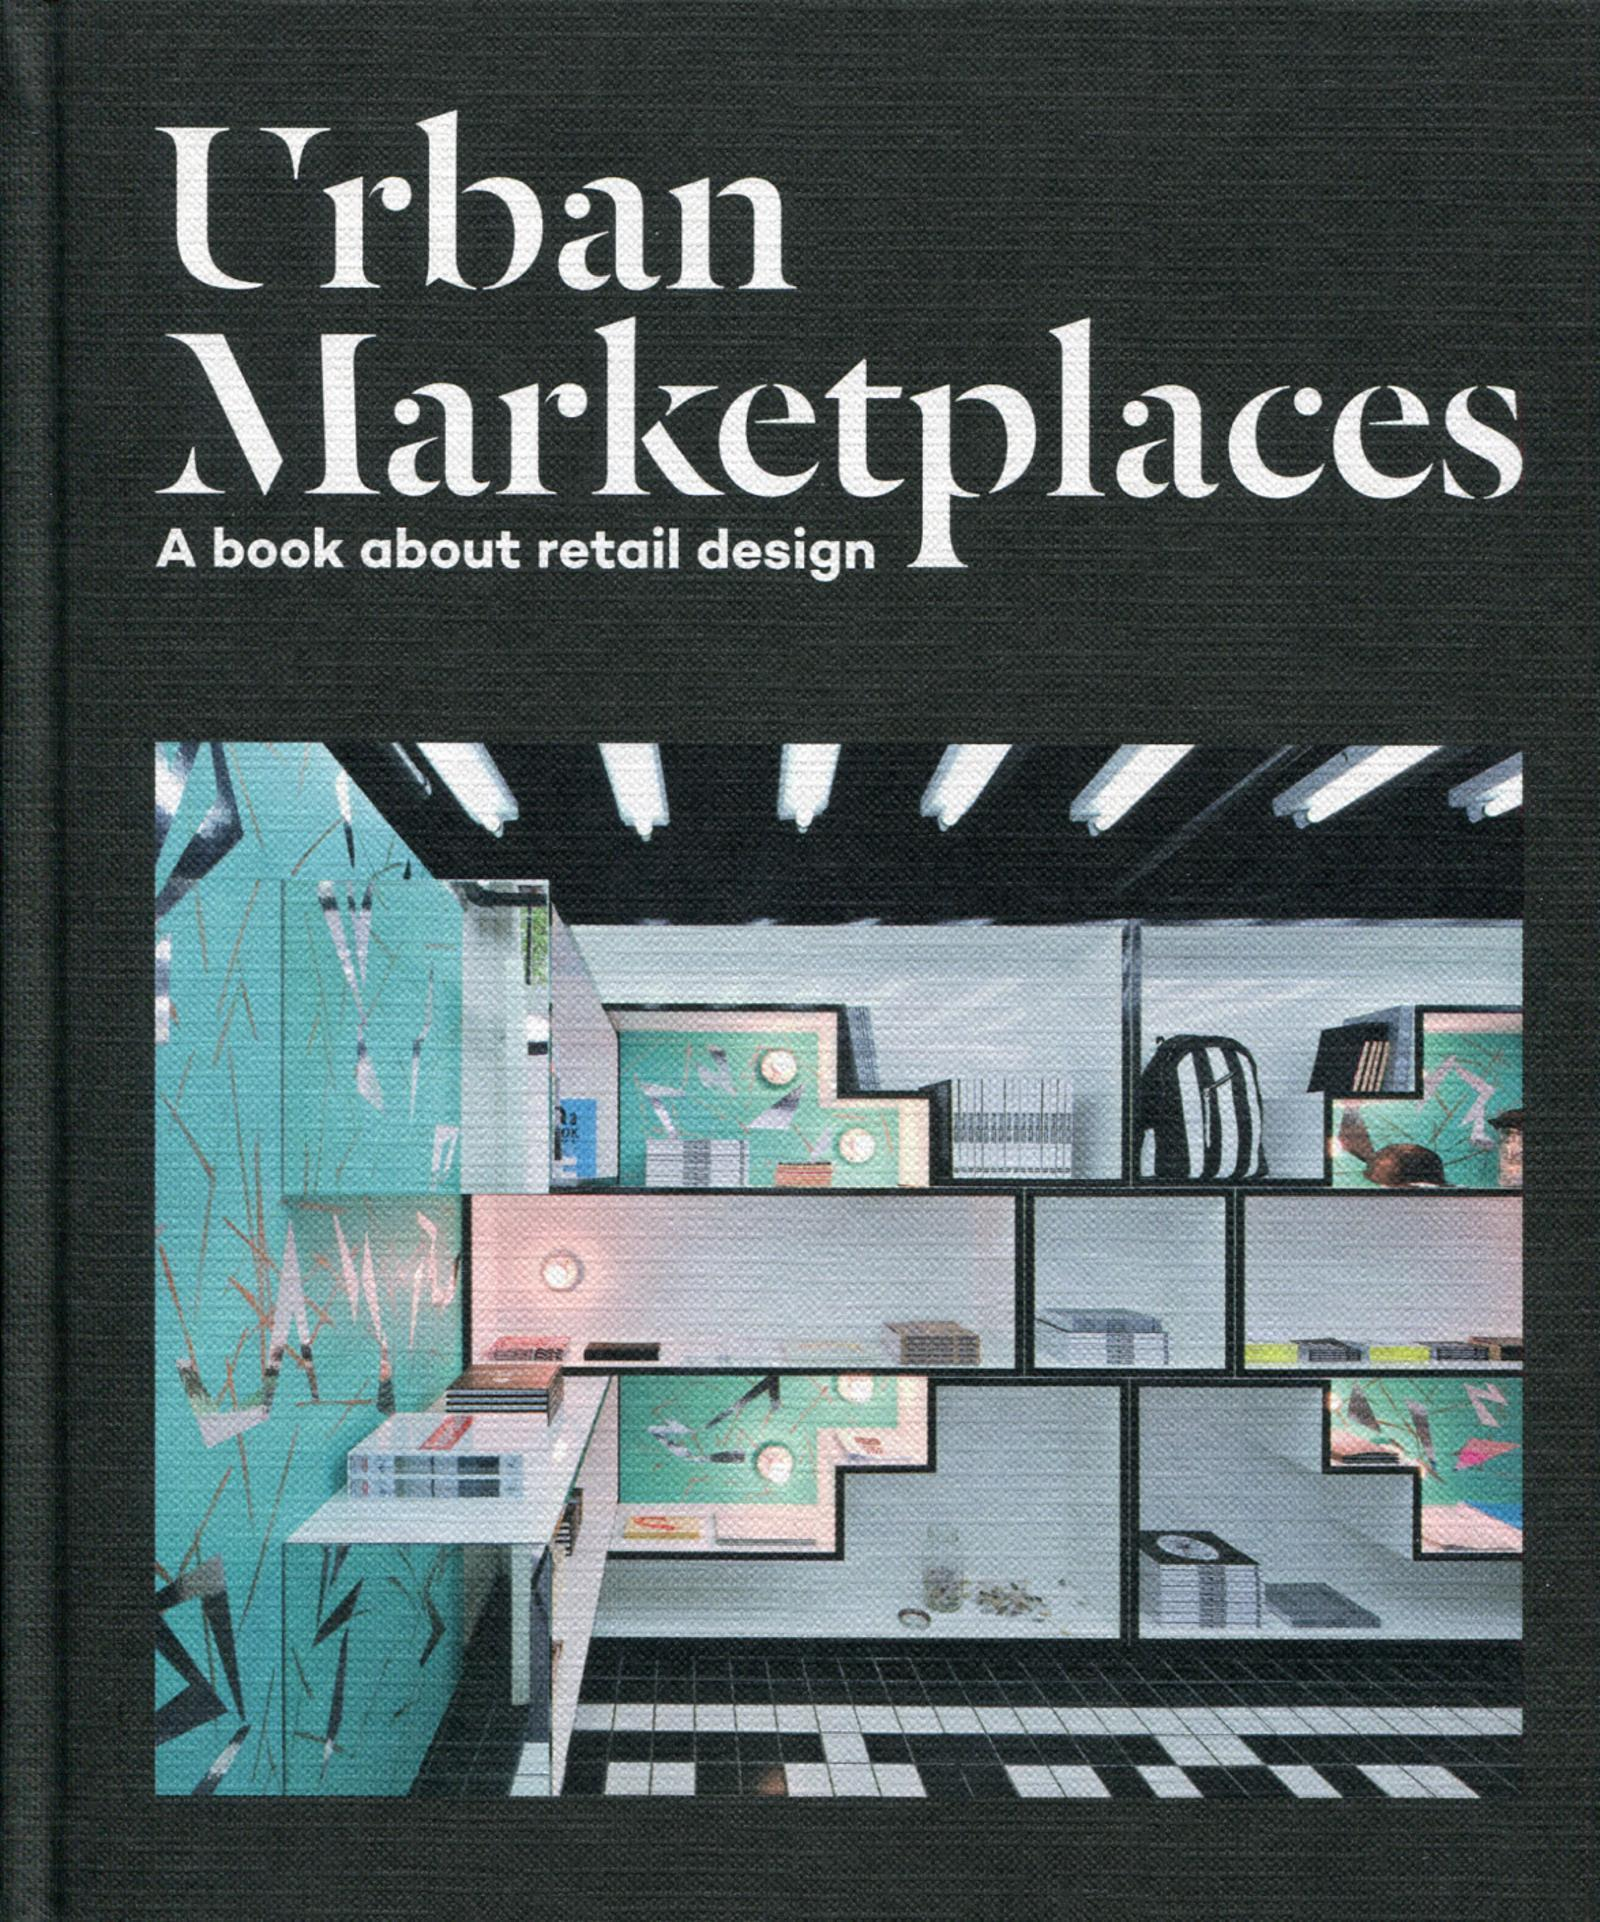 URBAN MARKETPLACES A BOOK ABOUT RETAIL DESIGN